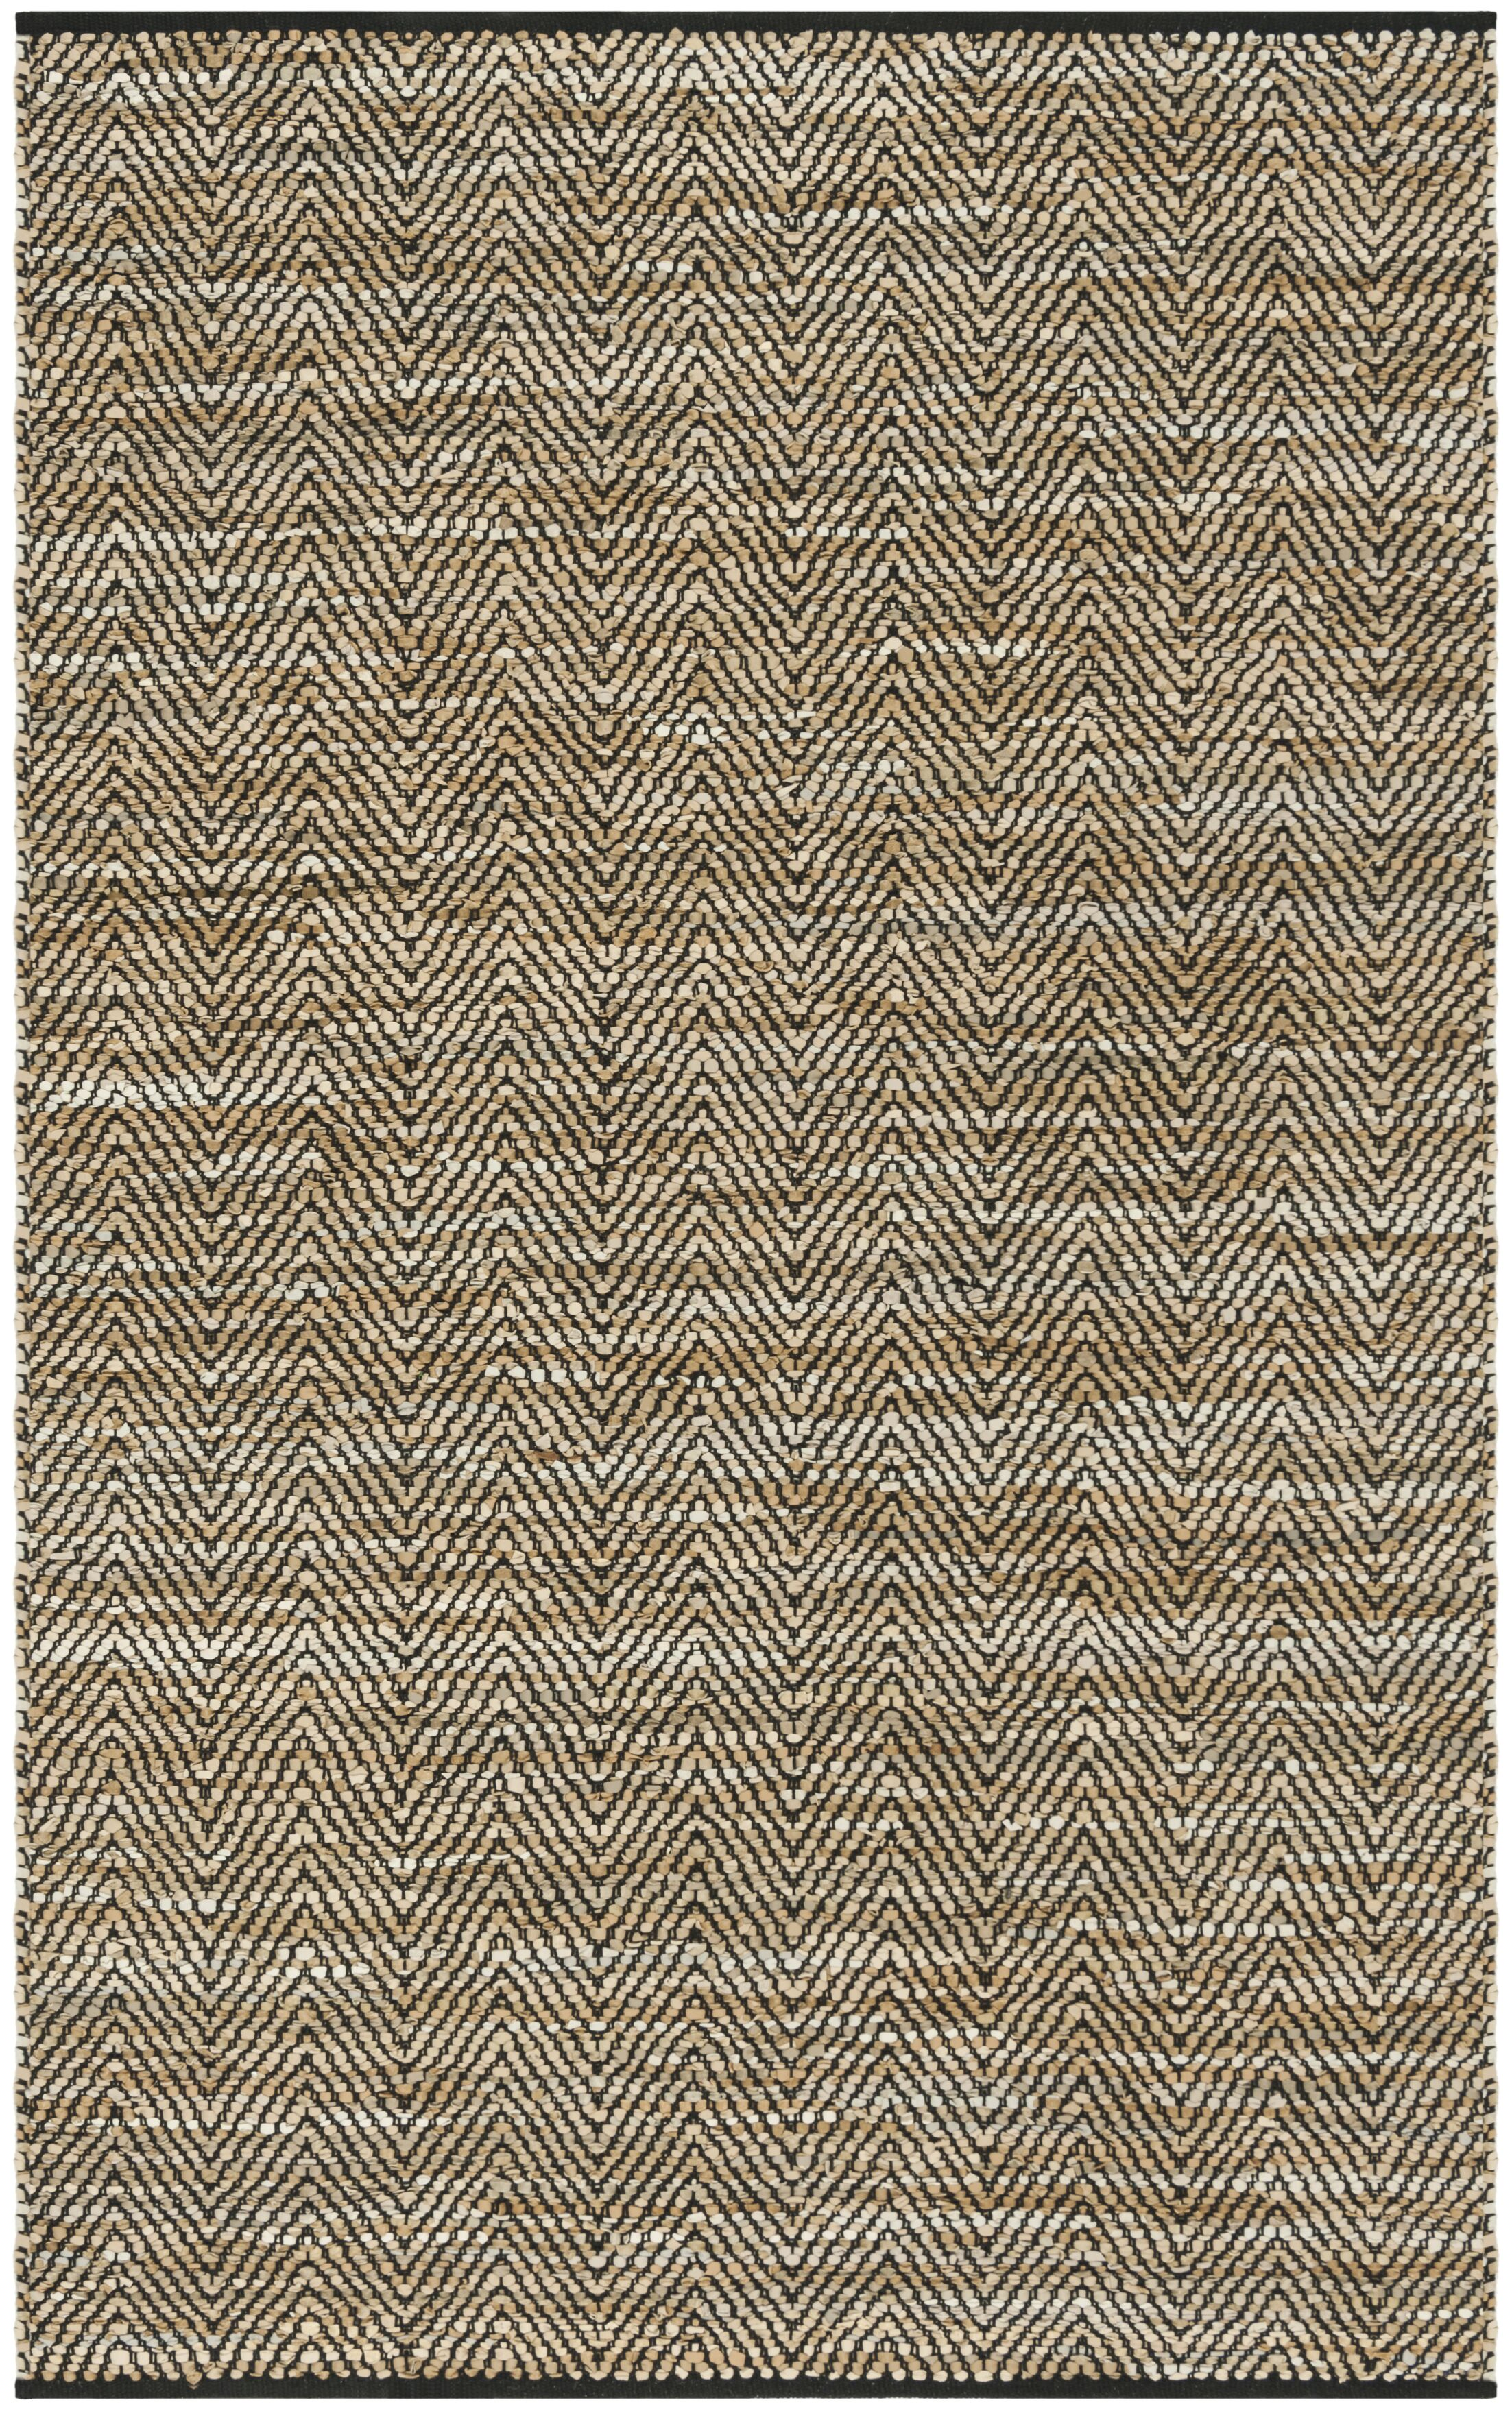 Glostrup Hand Tufted Beige Cotton Area Rug Rug Size: Rectangle 5' x 8'